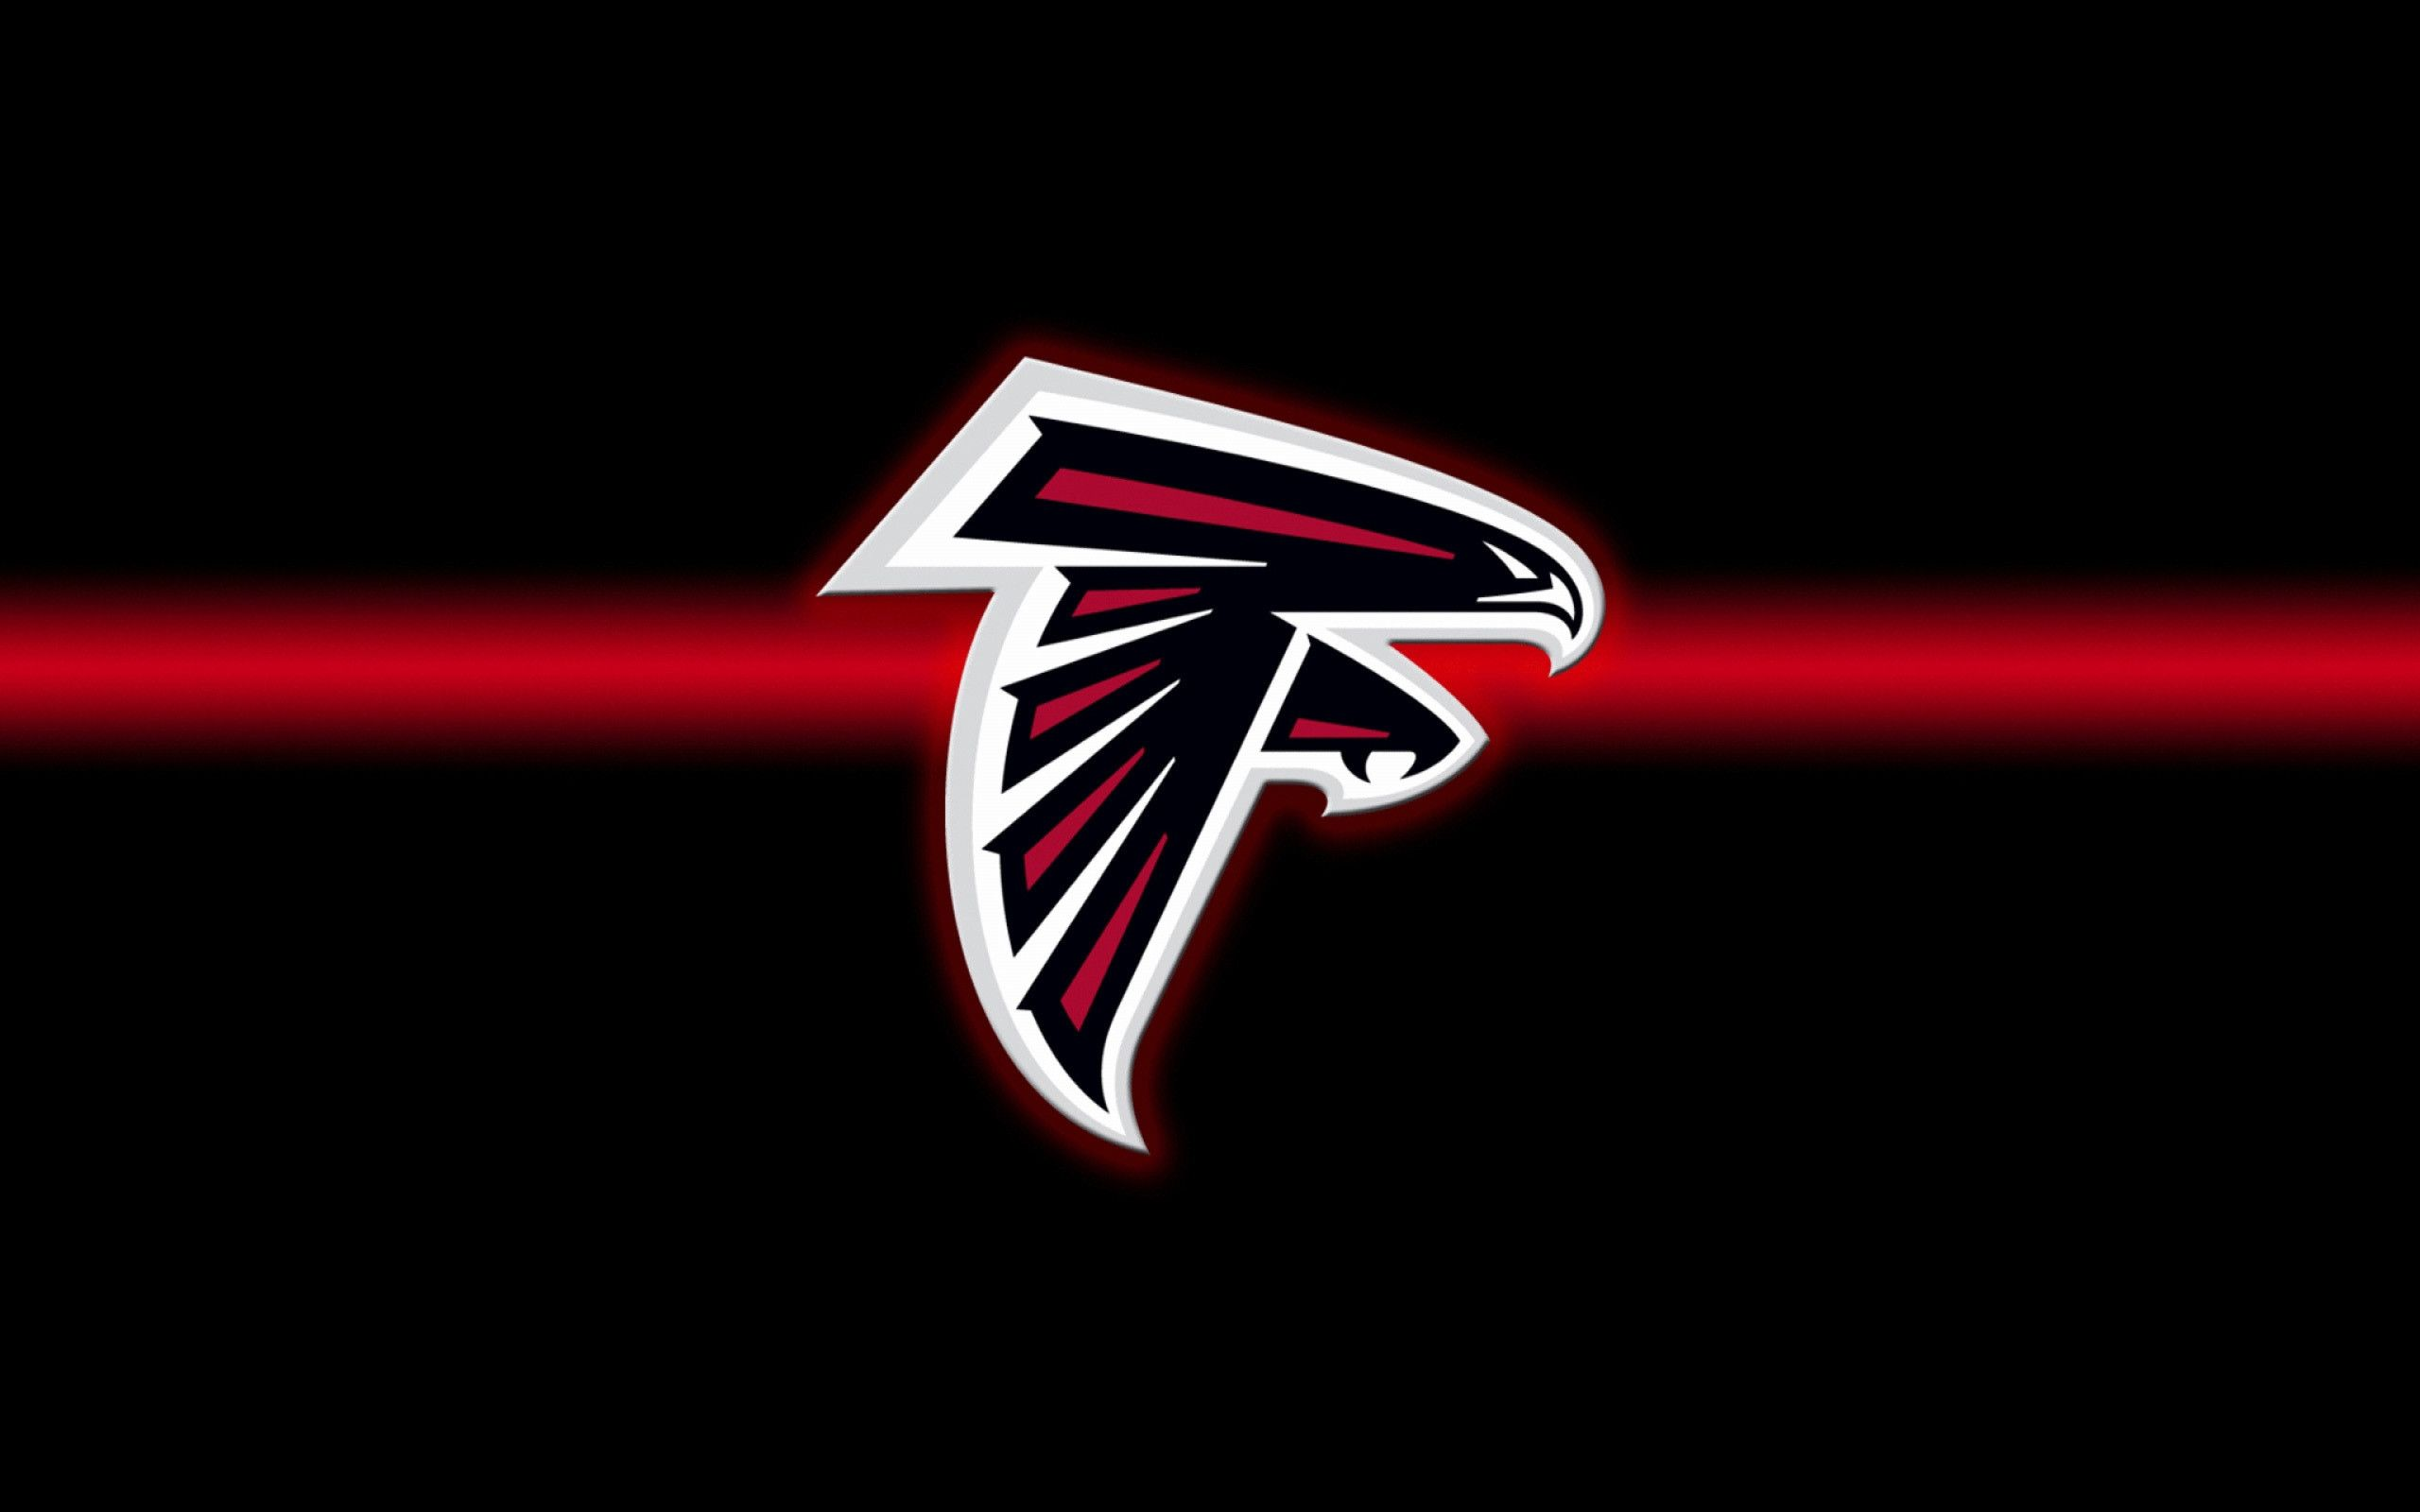 Atlanta Falcons 2018 Wallpaper Hd 64 Images: Atlanta Desktop Wallpaper